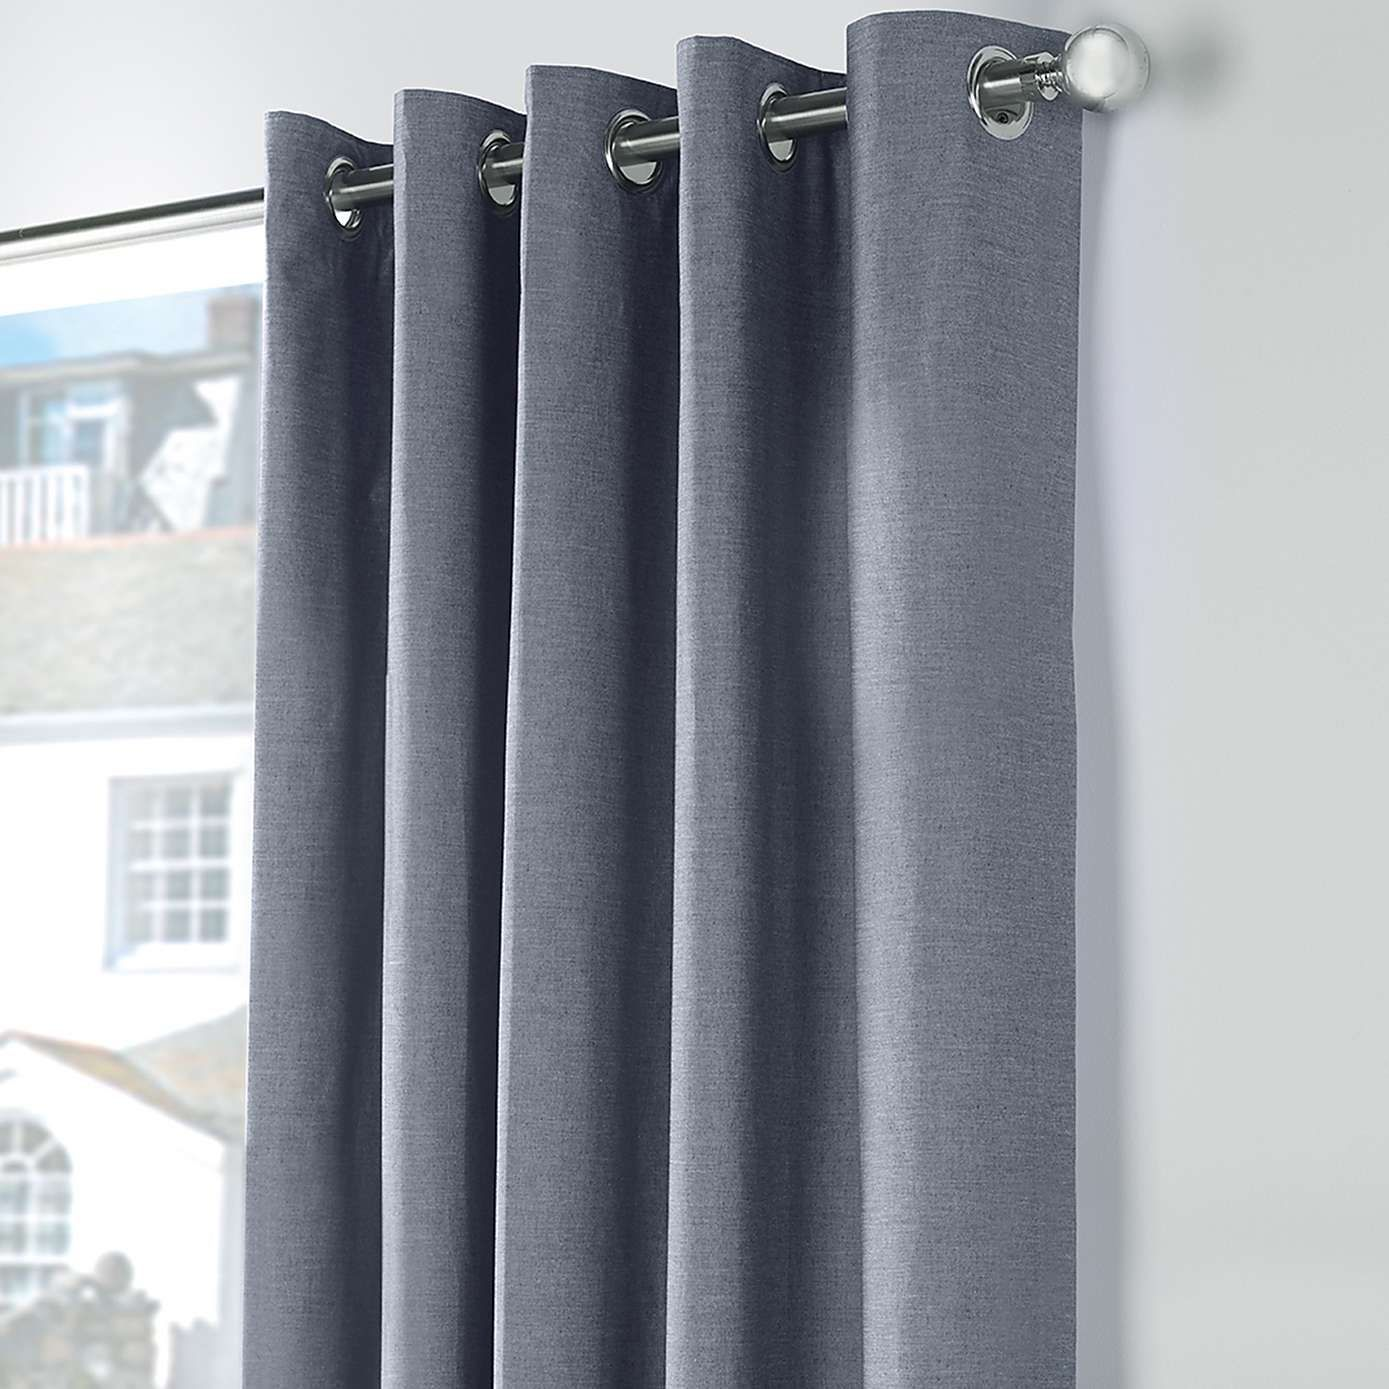 Chambray Blue Thermal Eyelet Curtains Curtains Thermal Curtains Curtains Dunelm